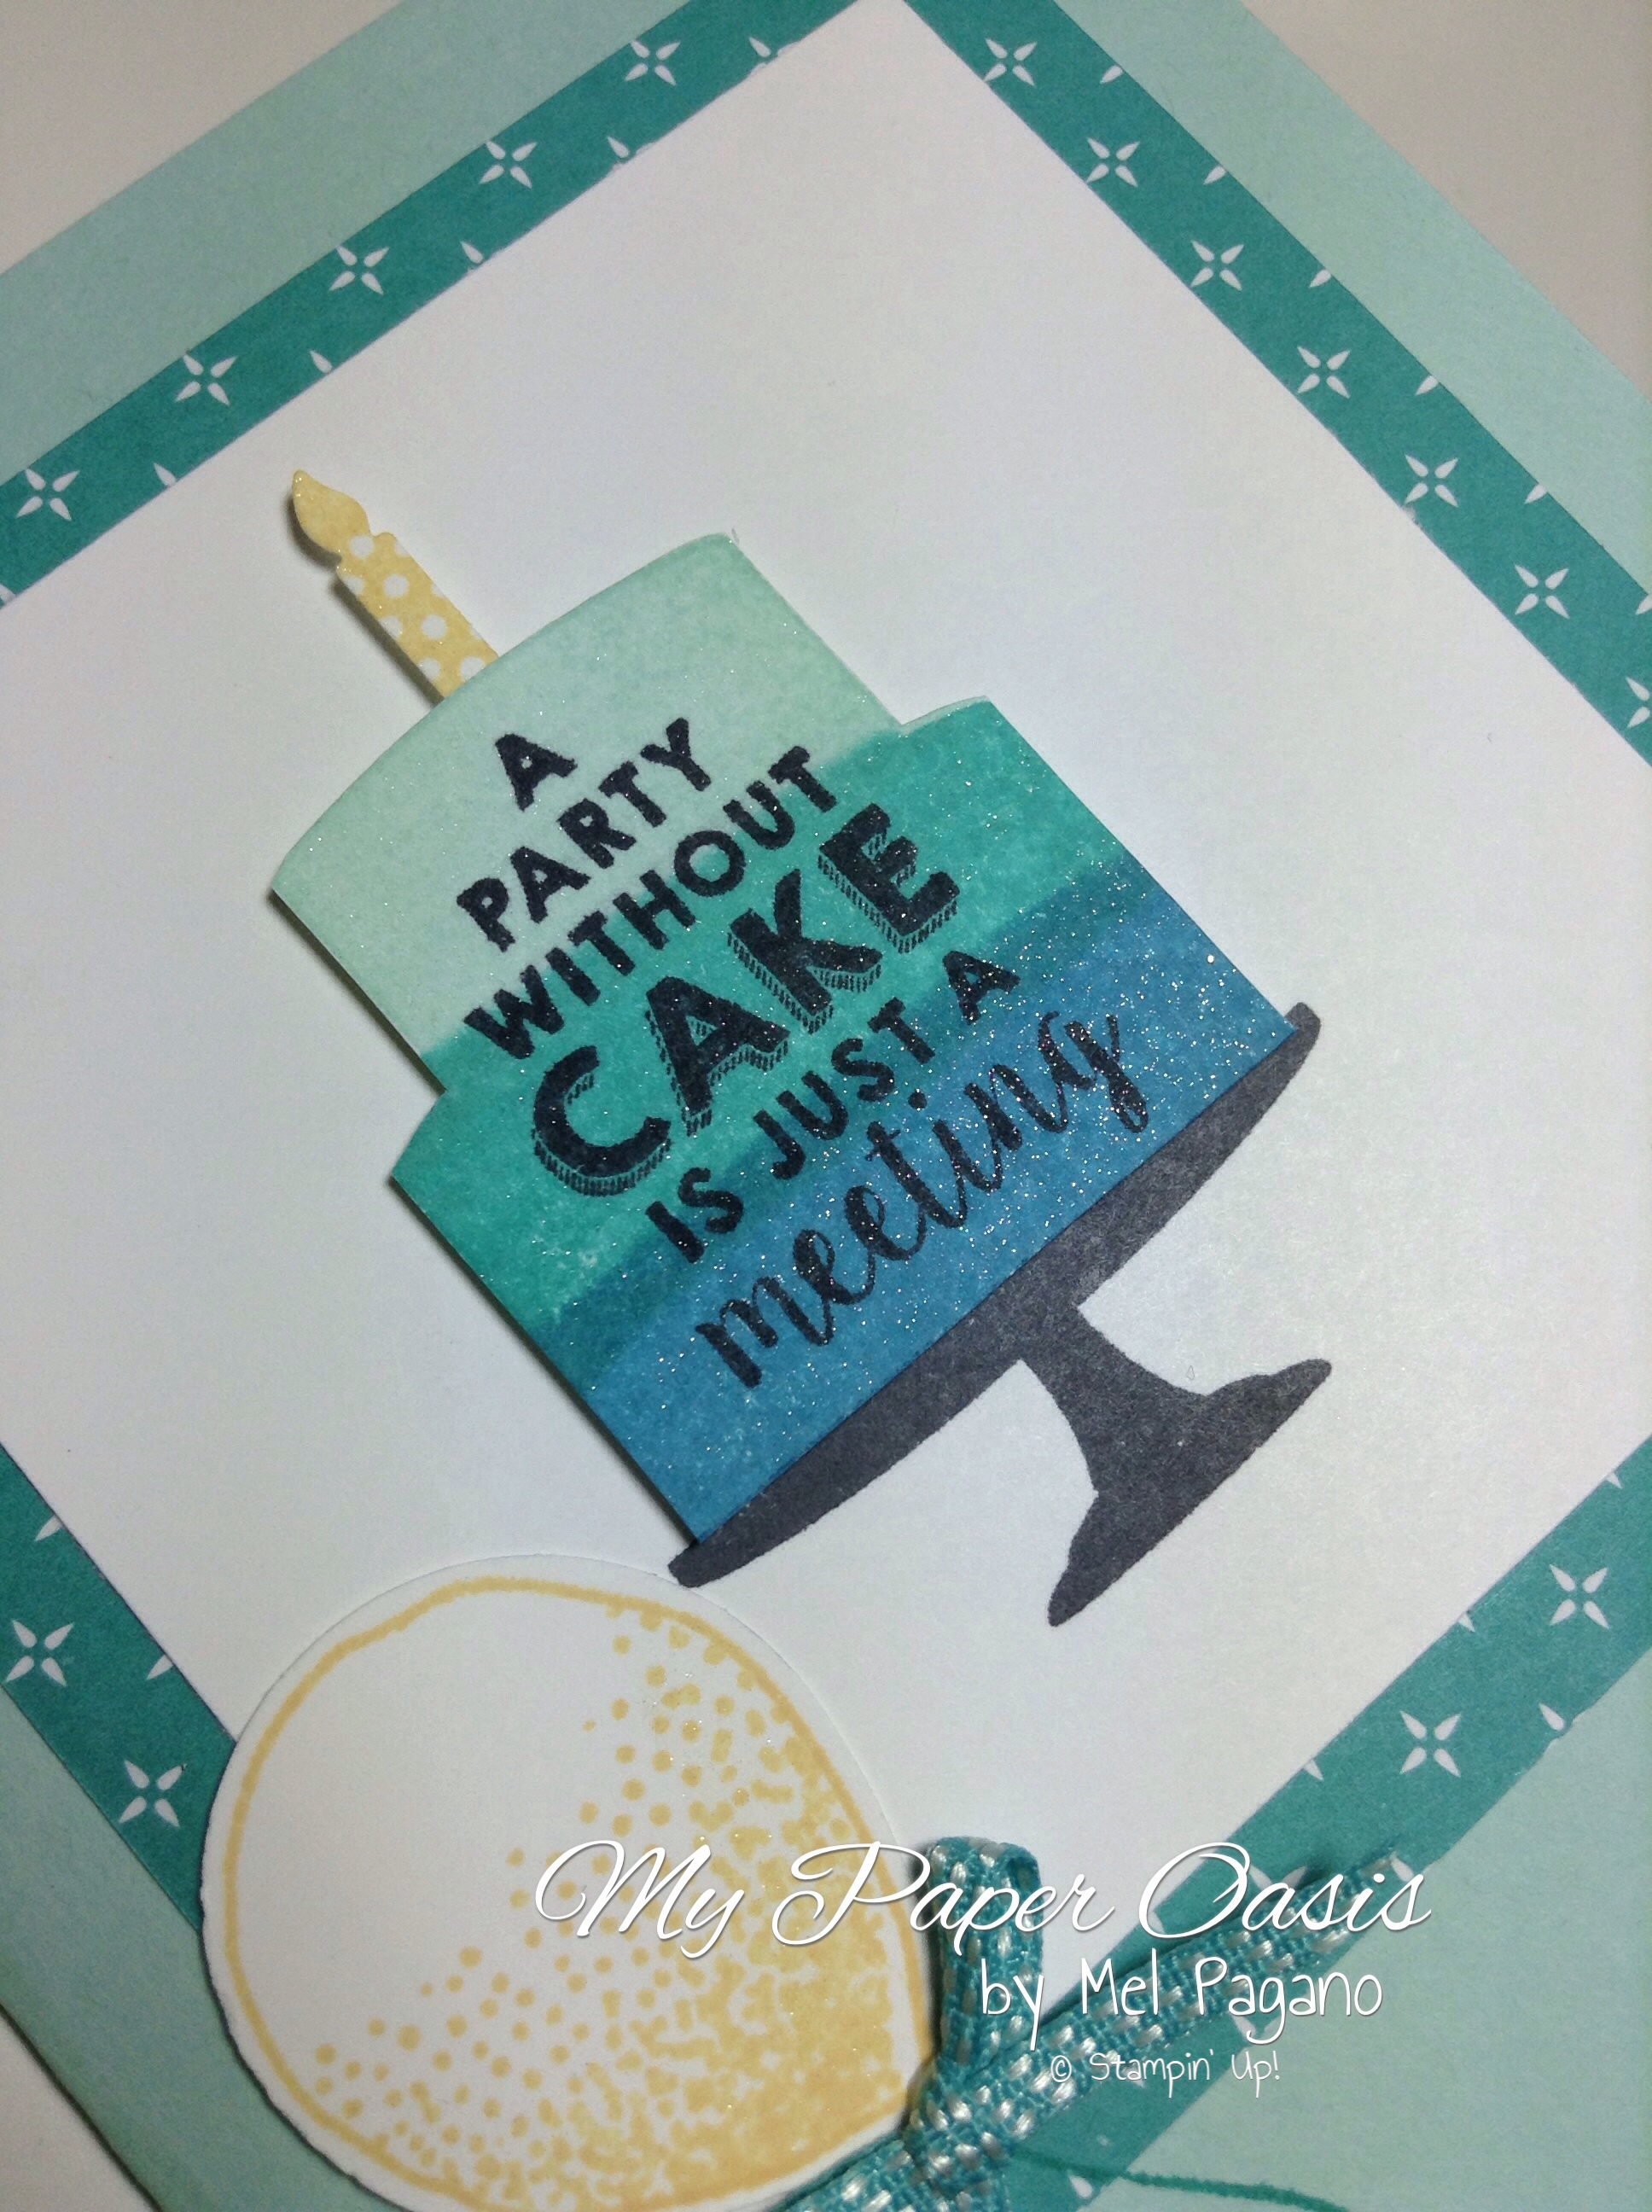 my paper oasis, birthday cake, birthday card, ombre cake, wink of stella, Party wishes, stampin up